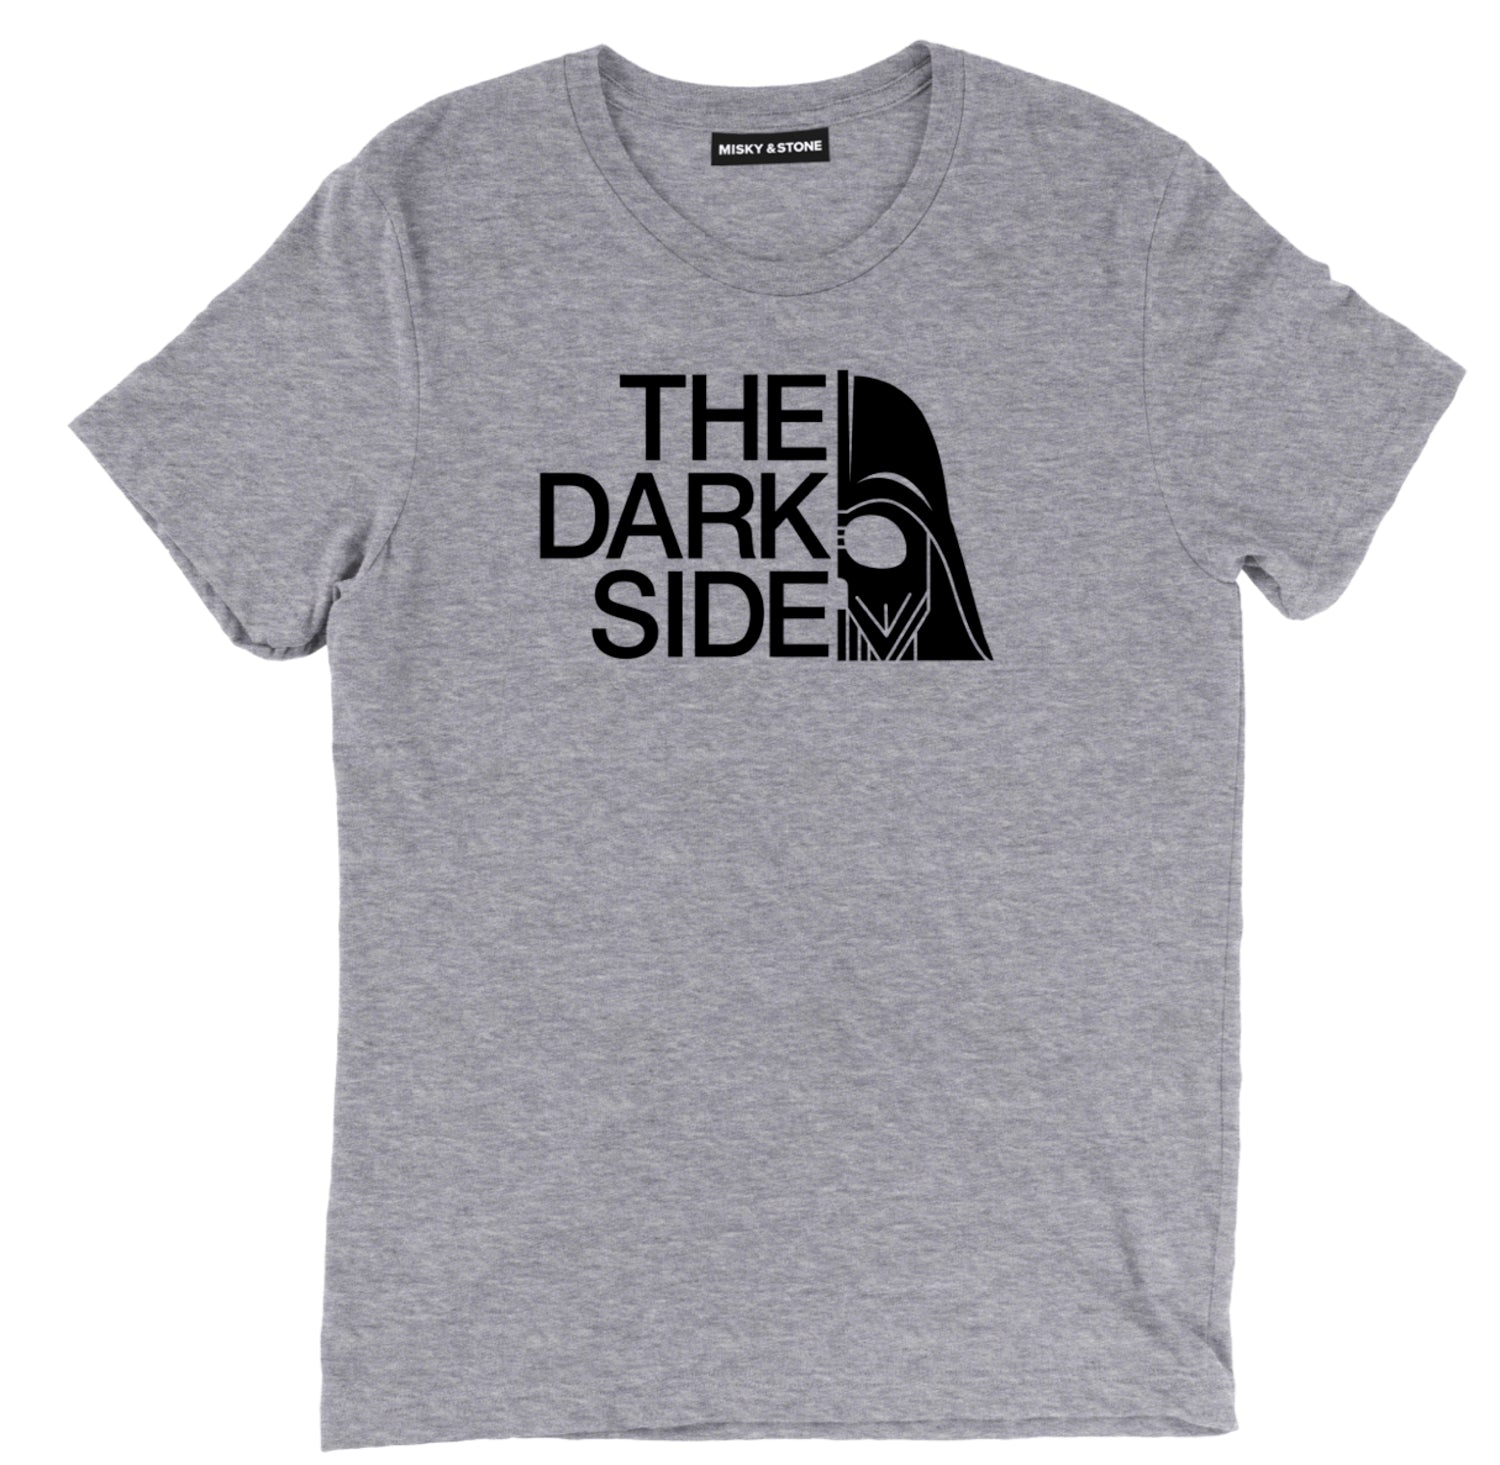 The Dark Side Tee